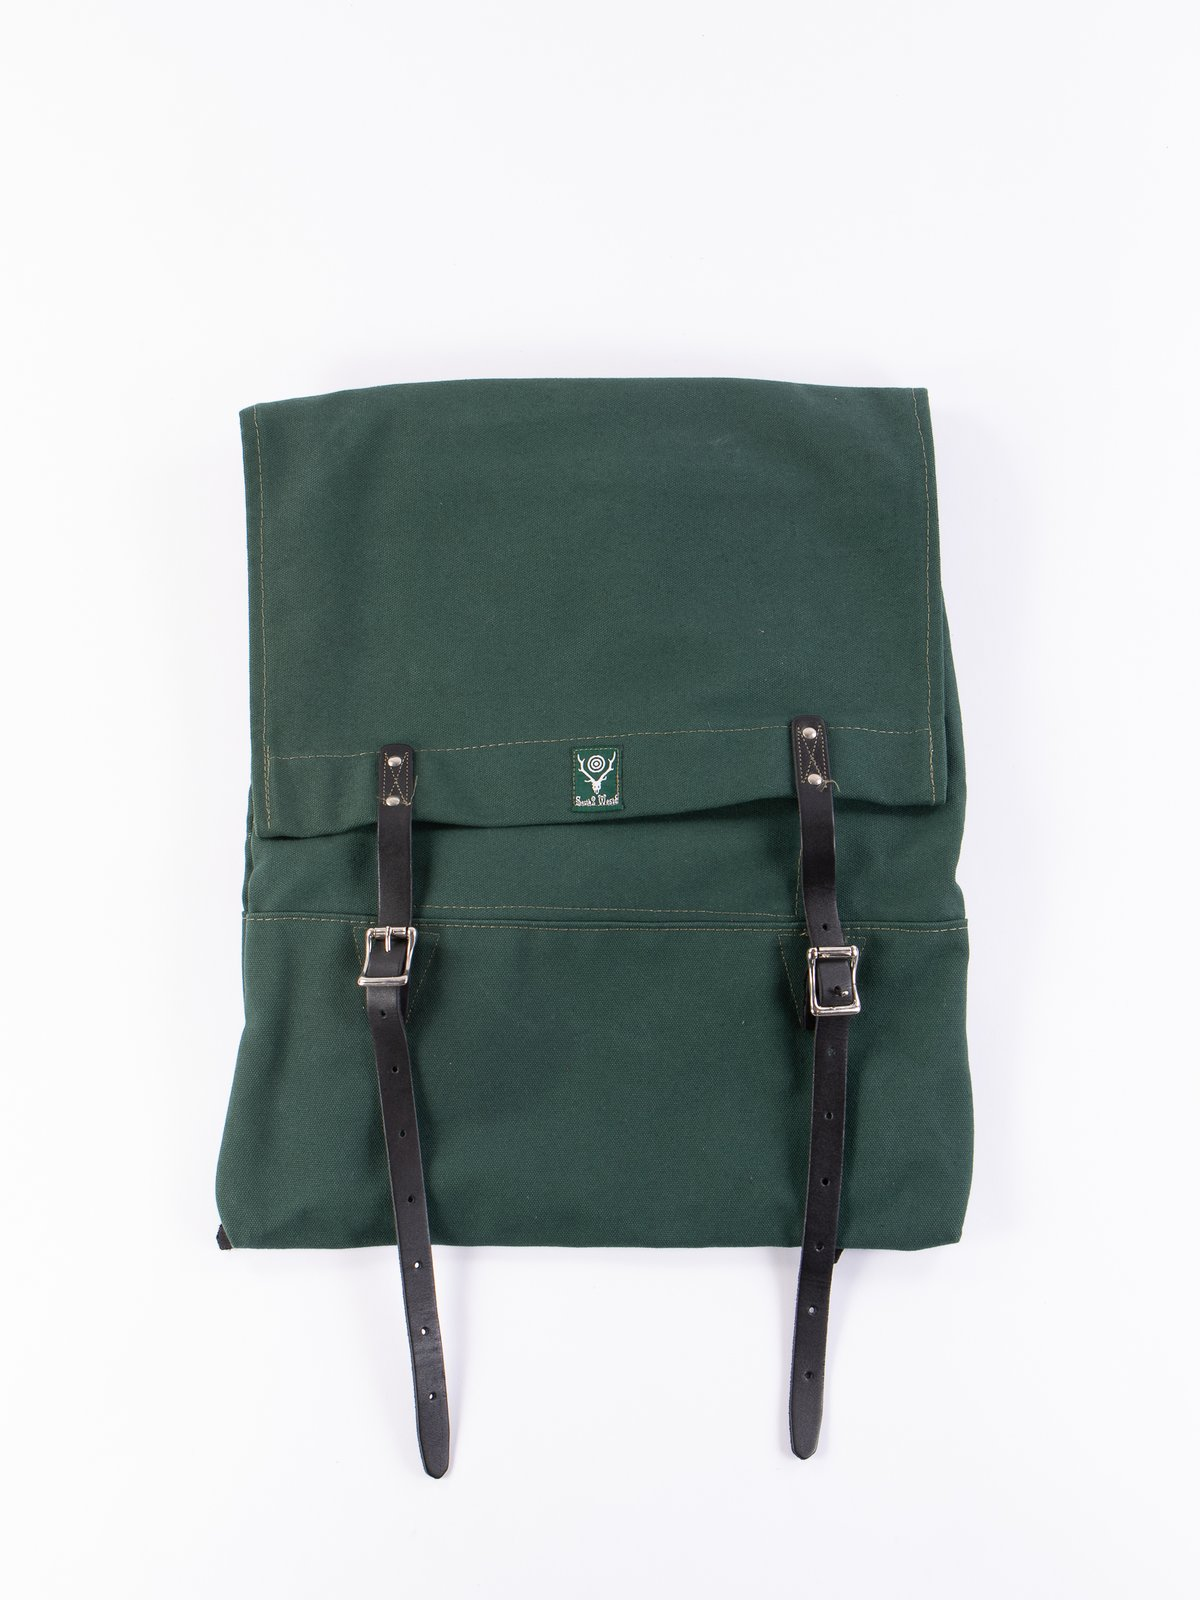 Hunter Green 18oz Canvas Trek Pack - Image 1